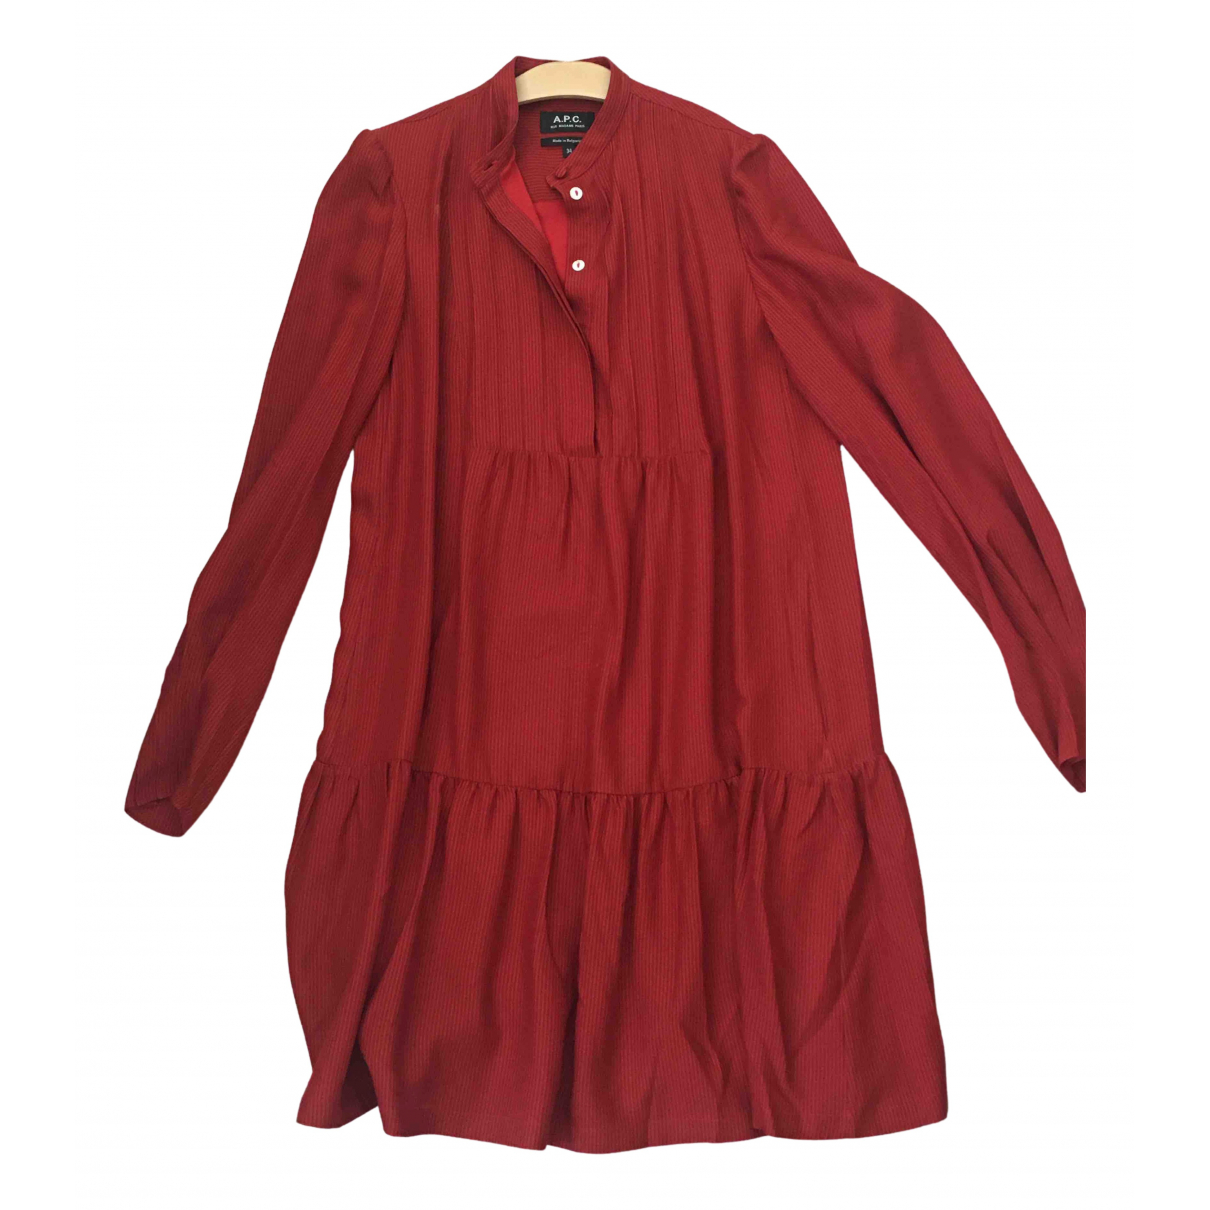 Apc \N Red Silk dress for Women 34 FR